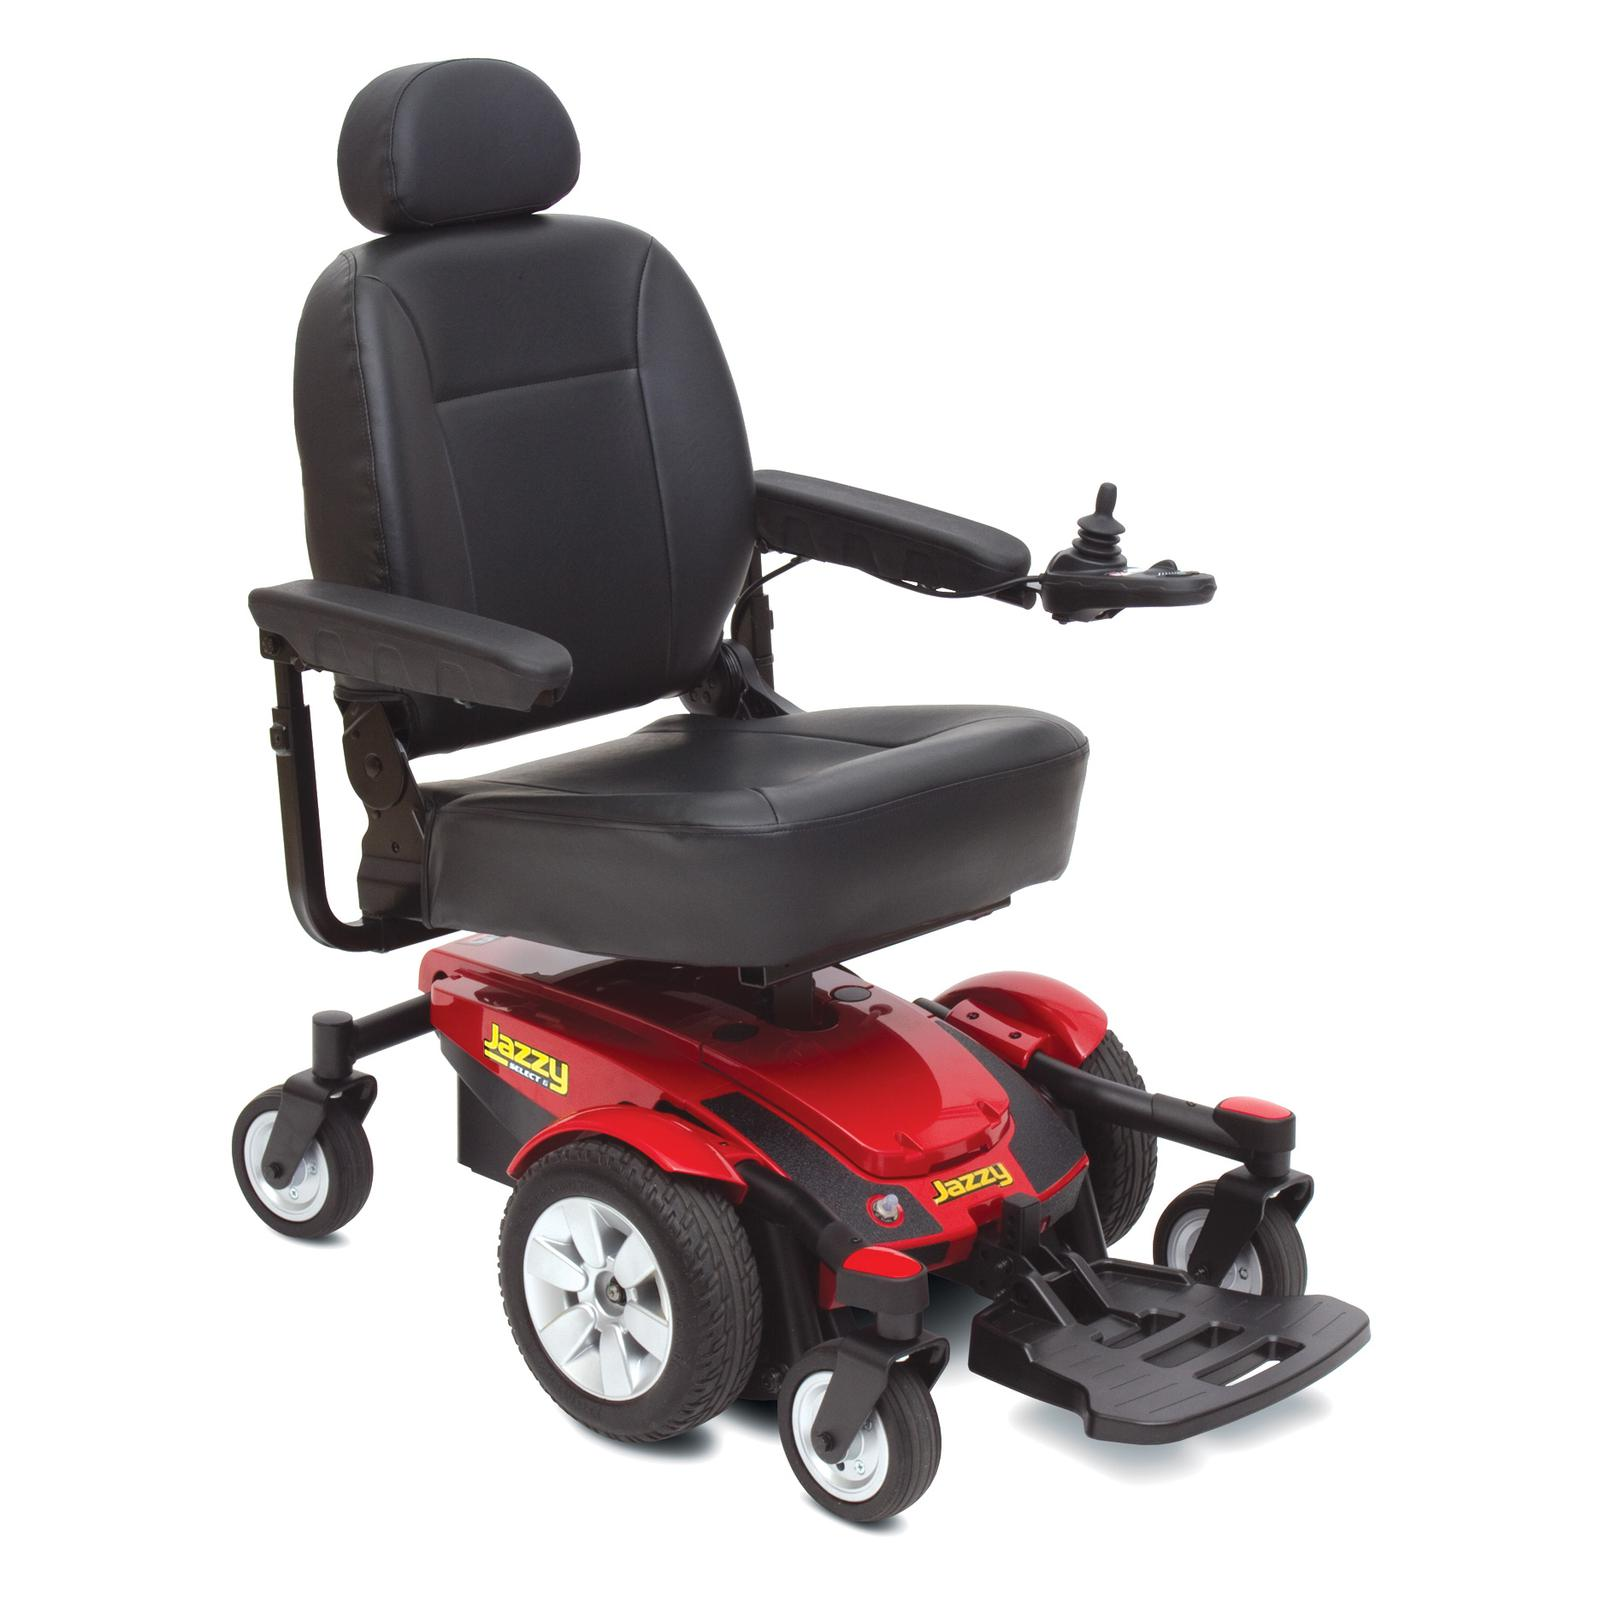 Chair Repair Shop Durable Medical Equipment Services Repairs At Ms Supply Home